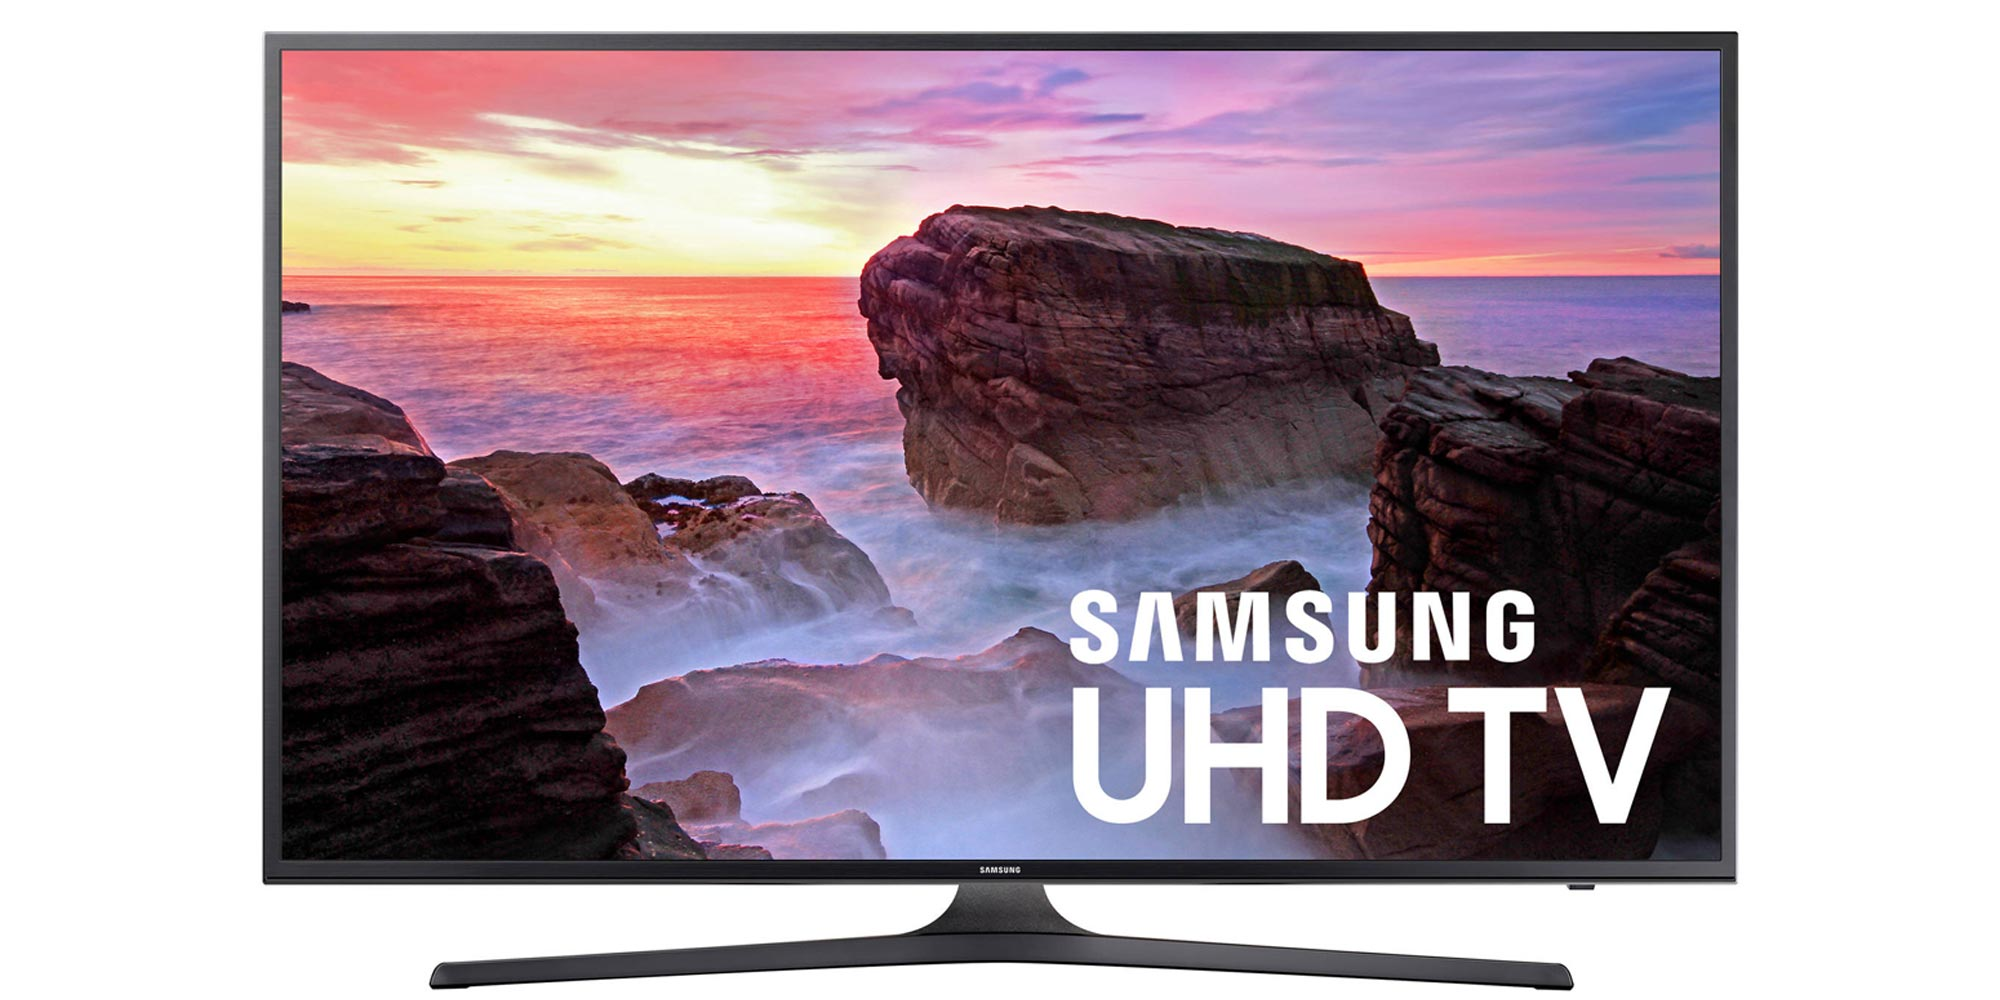 40 Inch Smart Tv Deals Add A New Tv To Your Living Room W These Deals Samsung 40 Inch